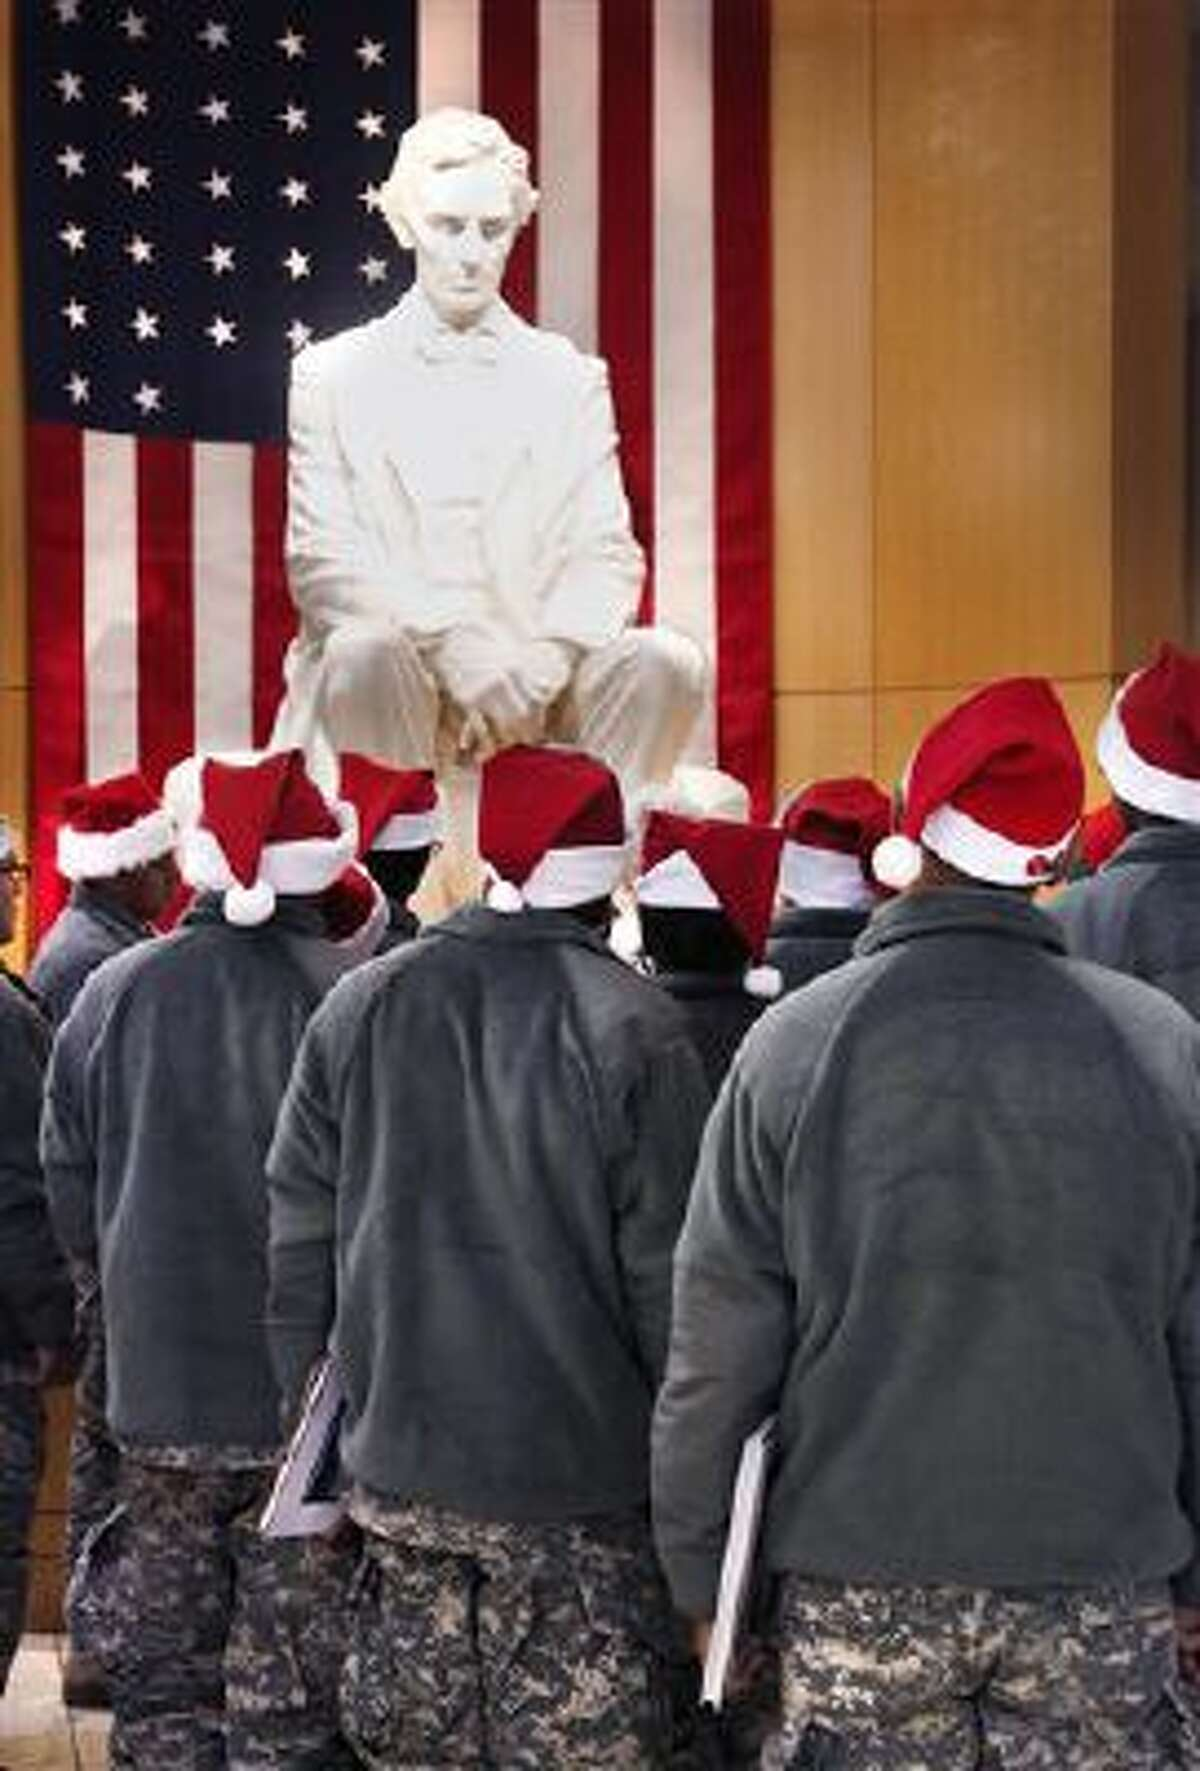 Wearing Santa hats instead of traditional military caps, a group of soldiers gather around a statue of Abraham Lincoln to hear a tour guide. Lincoln appears on the penny coin.